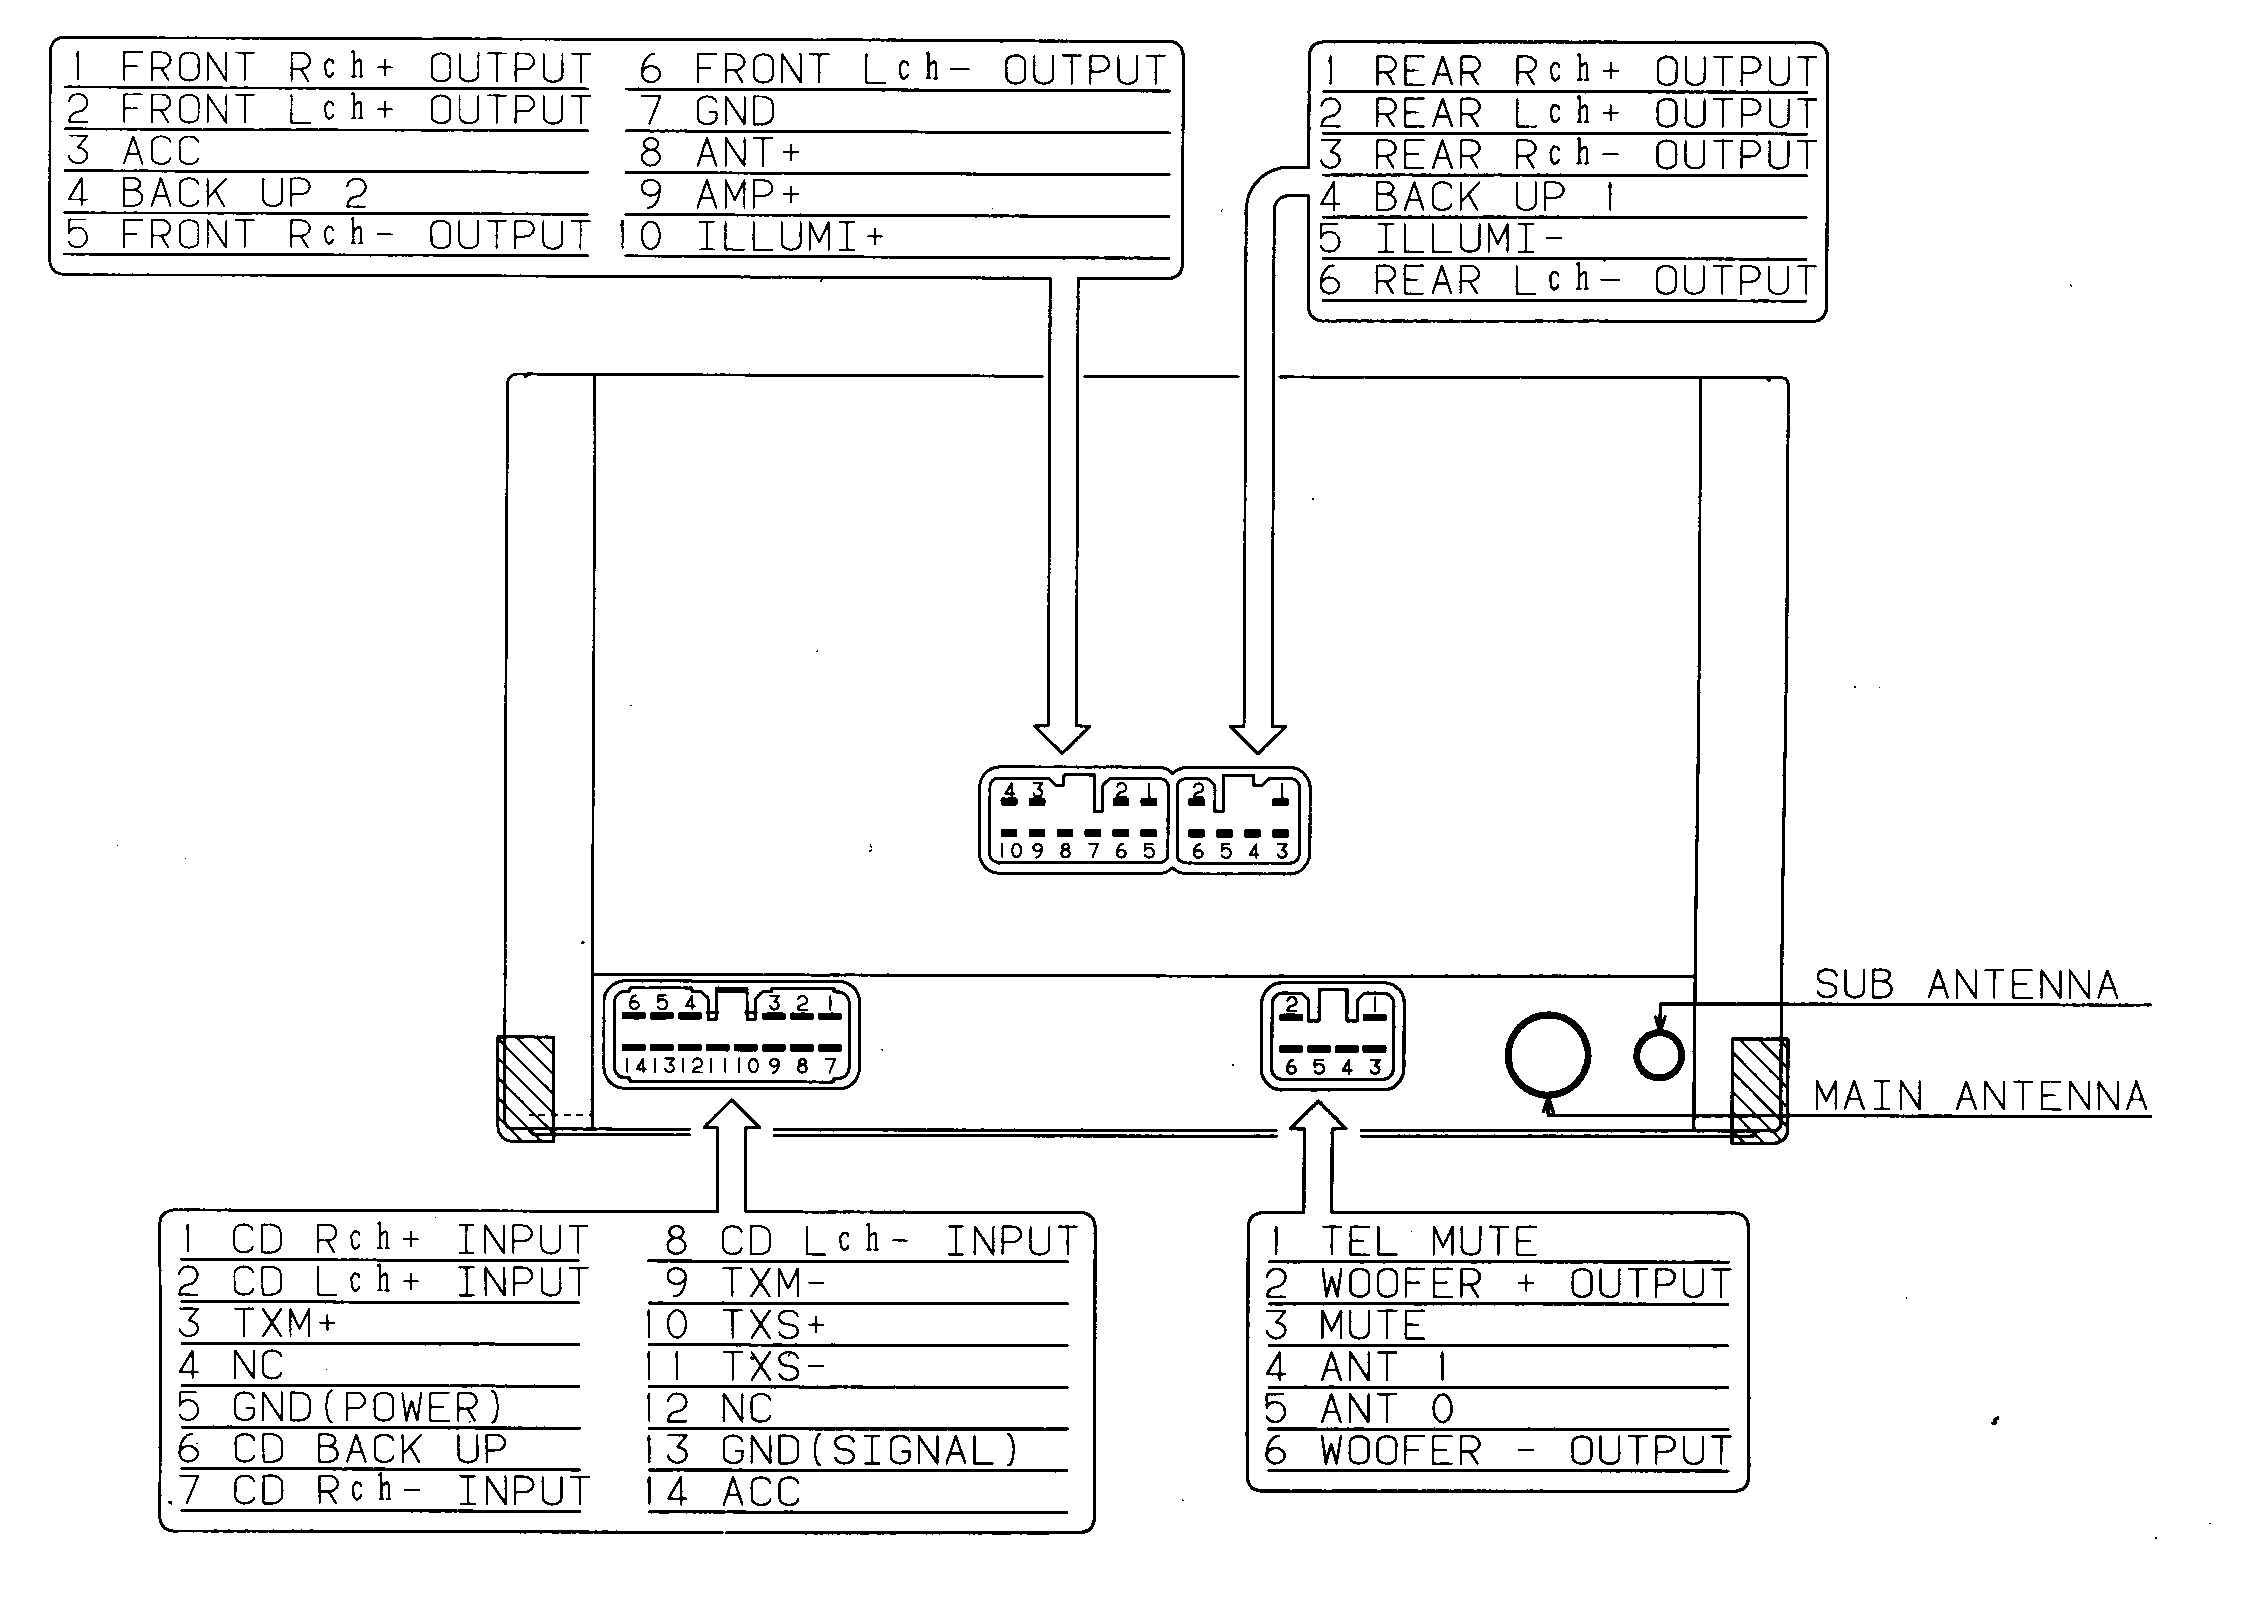 Lexus car stereo wiring diagram harness pinout connector wire nissan almera ecu pinout nissan 350z wiring diagram with  at mifinder.co